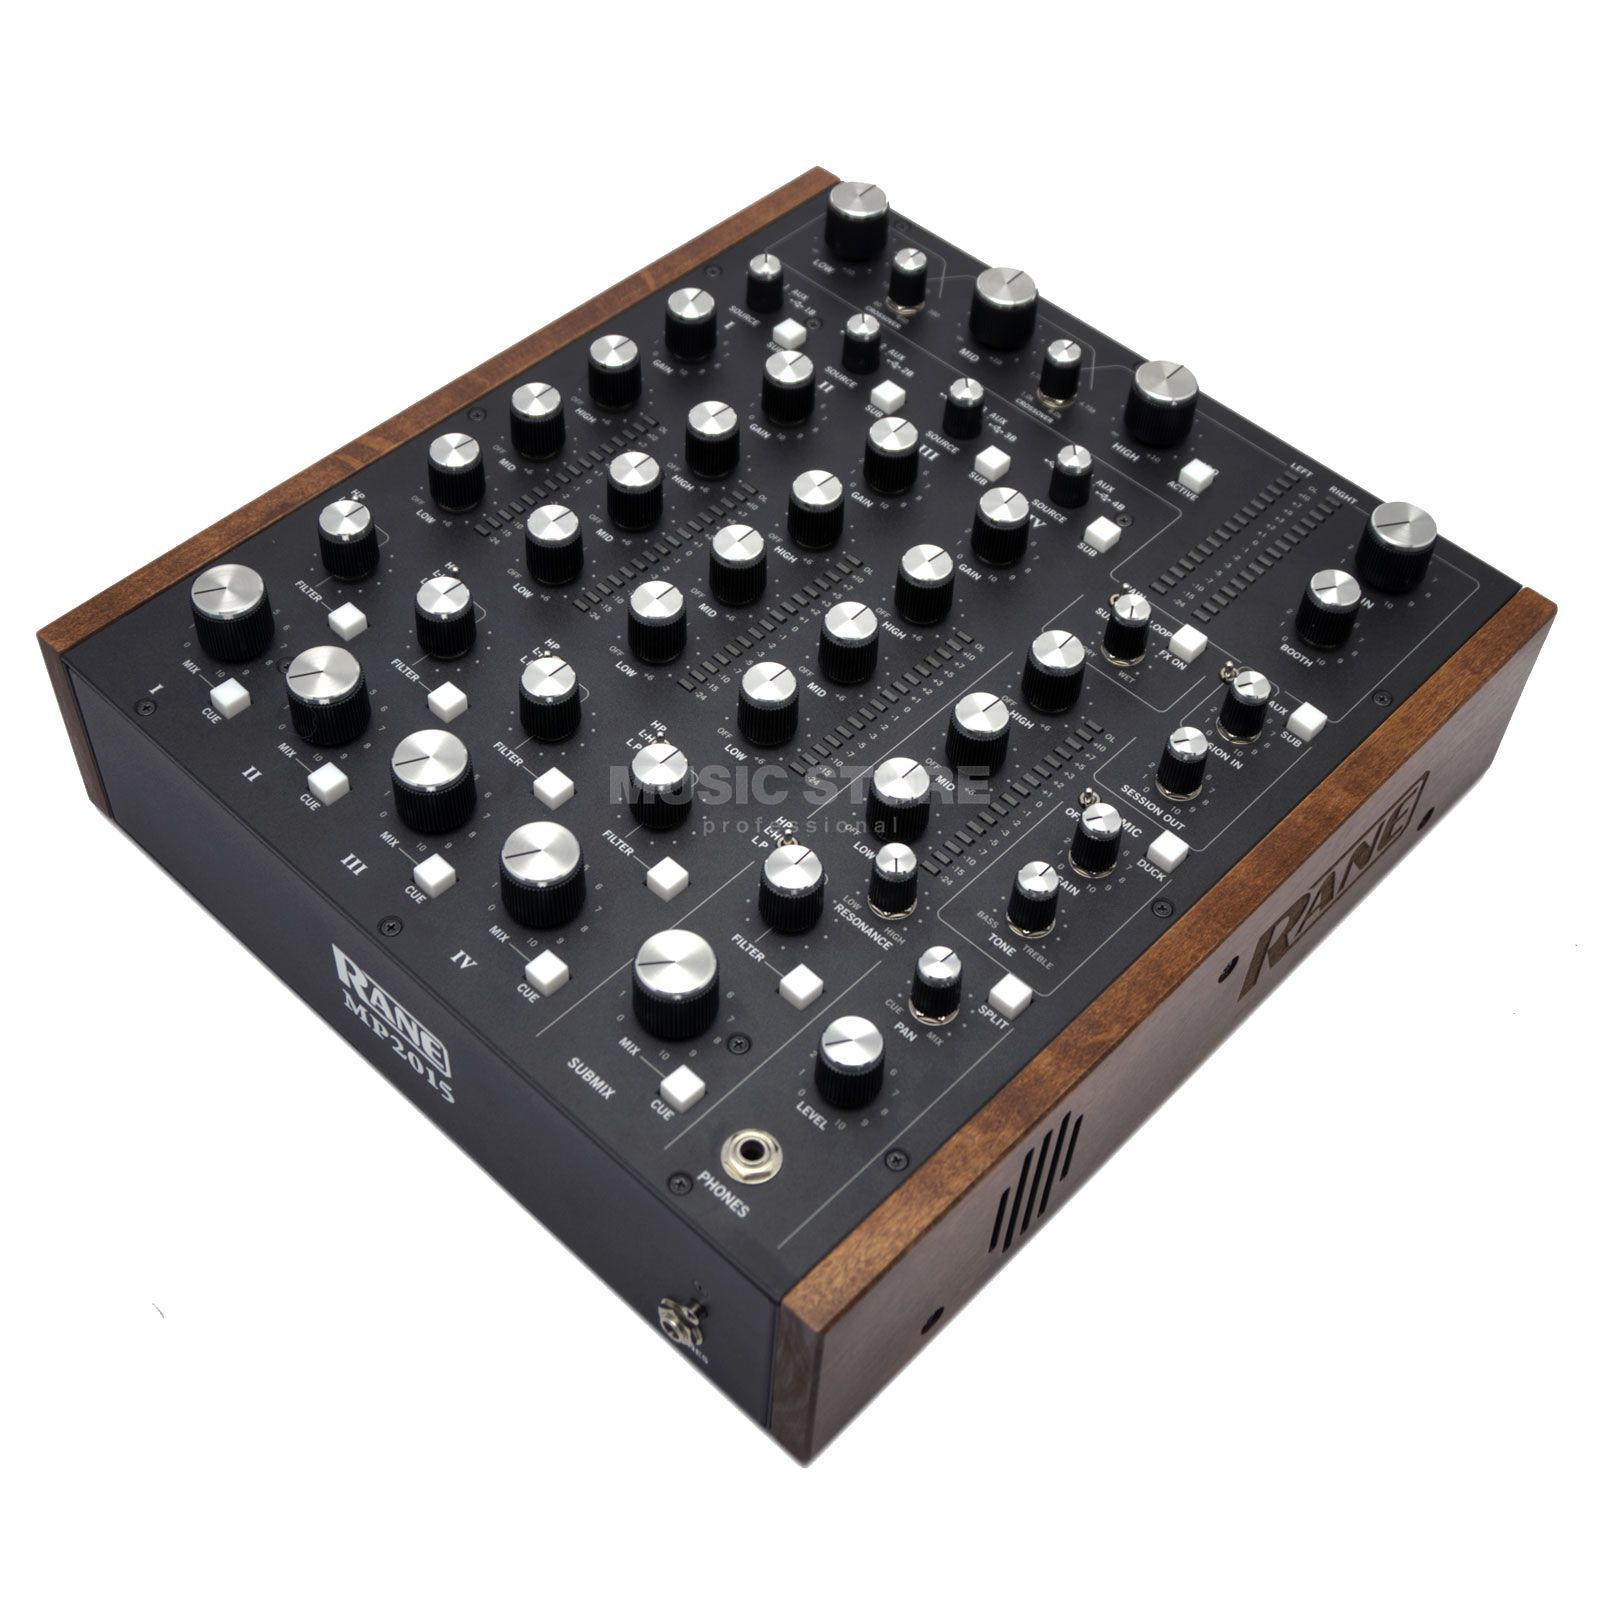 Rane MP 2015 Rotary Mixer avec interface USB Image du produit